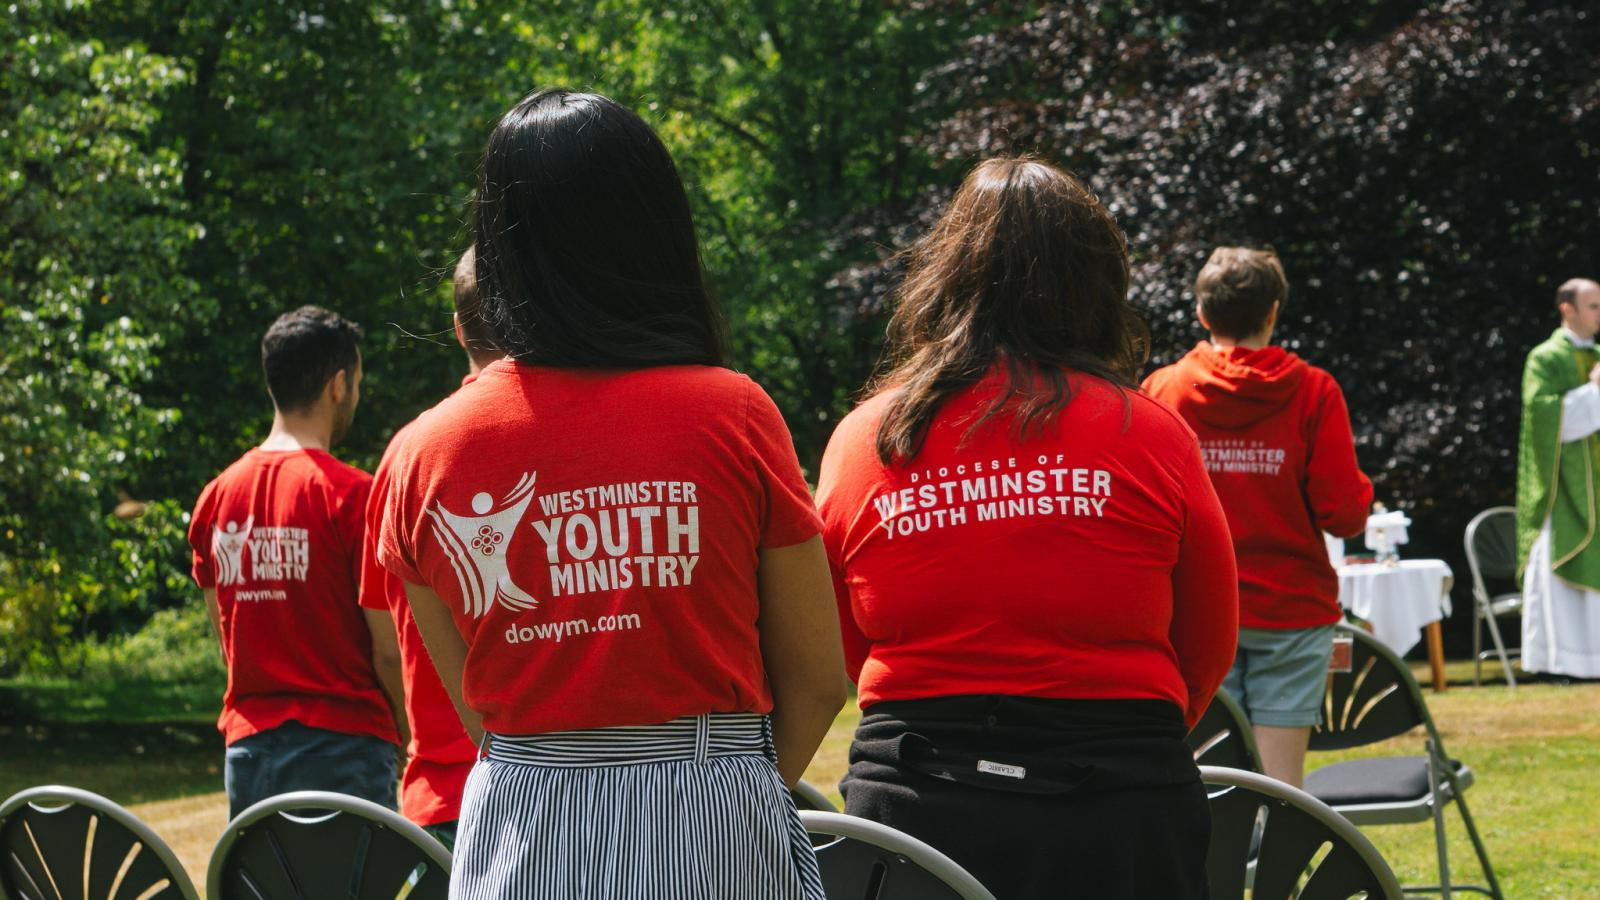 Youth Ministry - Diocese of Westminster